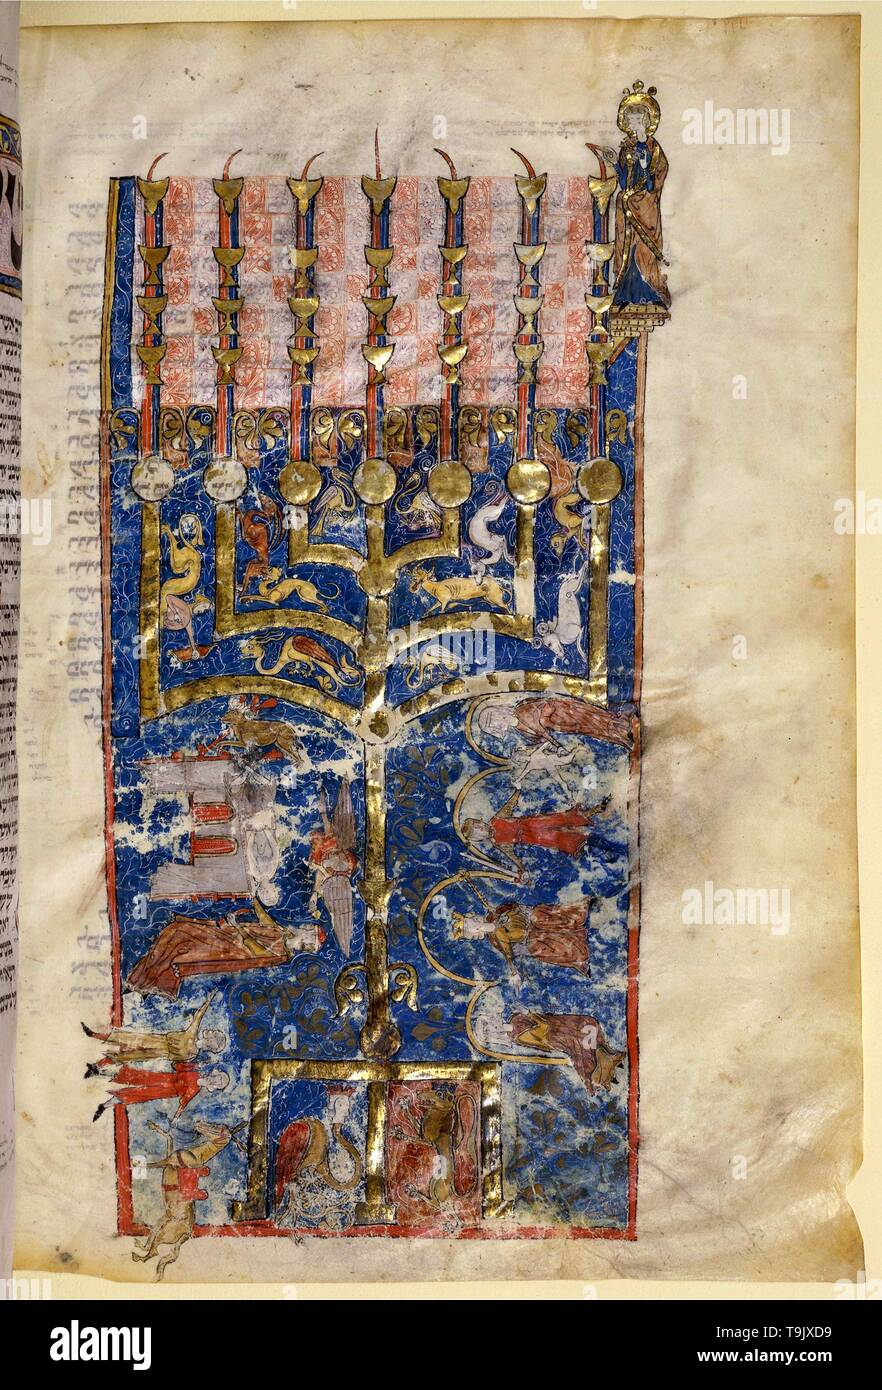 Pentateuch with the Menorah. Museum: BIBLIOTHEQUE NATIONALE DE FRANCE. Author: ANONYMOUS. - Stock Image